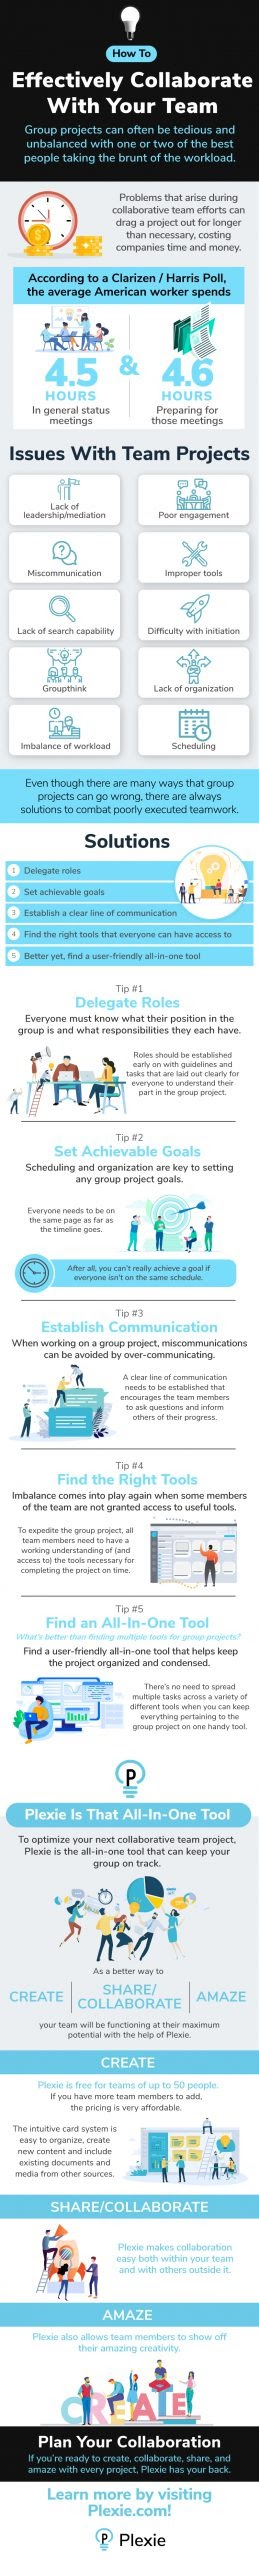 Effectively Collaborate With Your Team #infographic